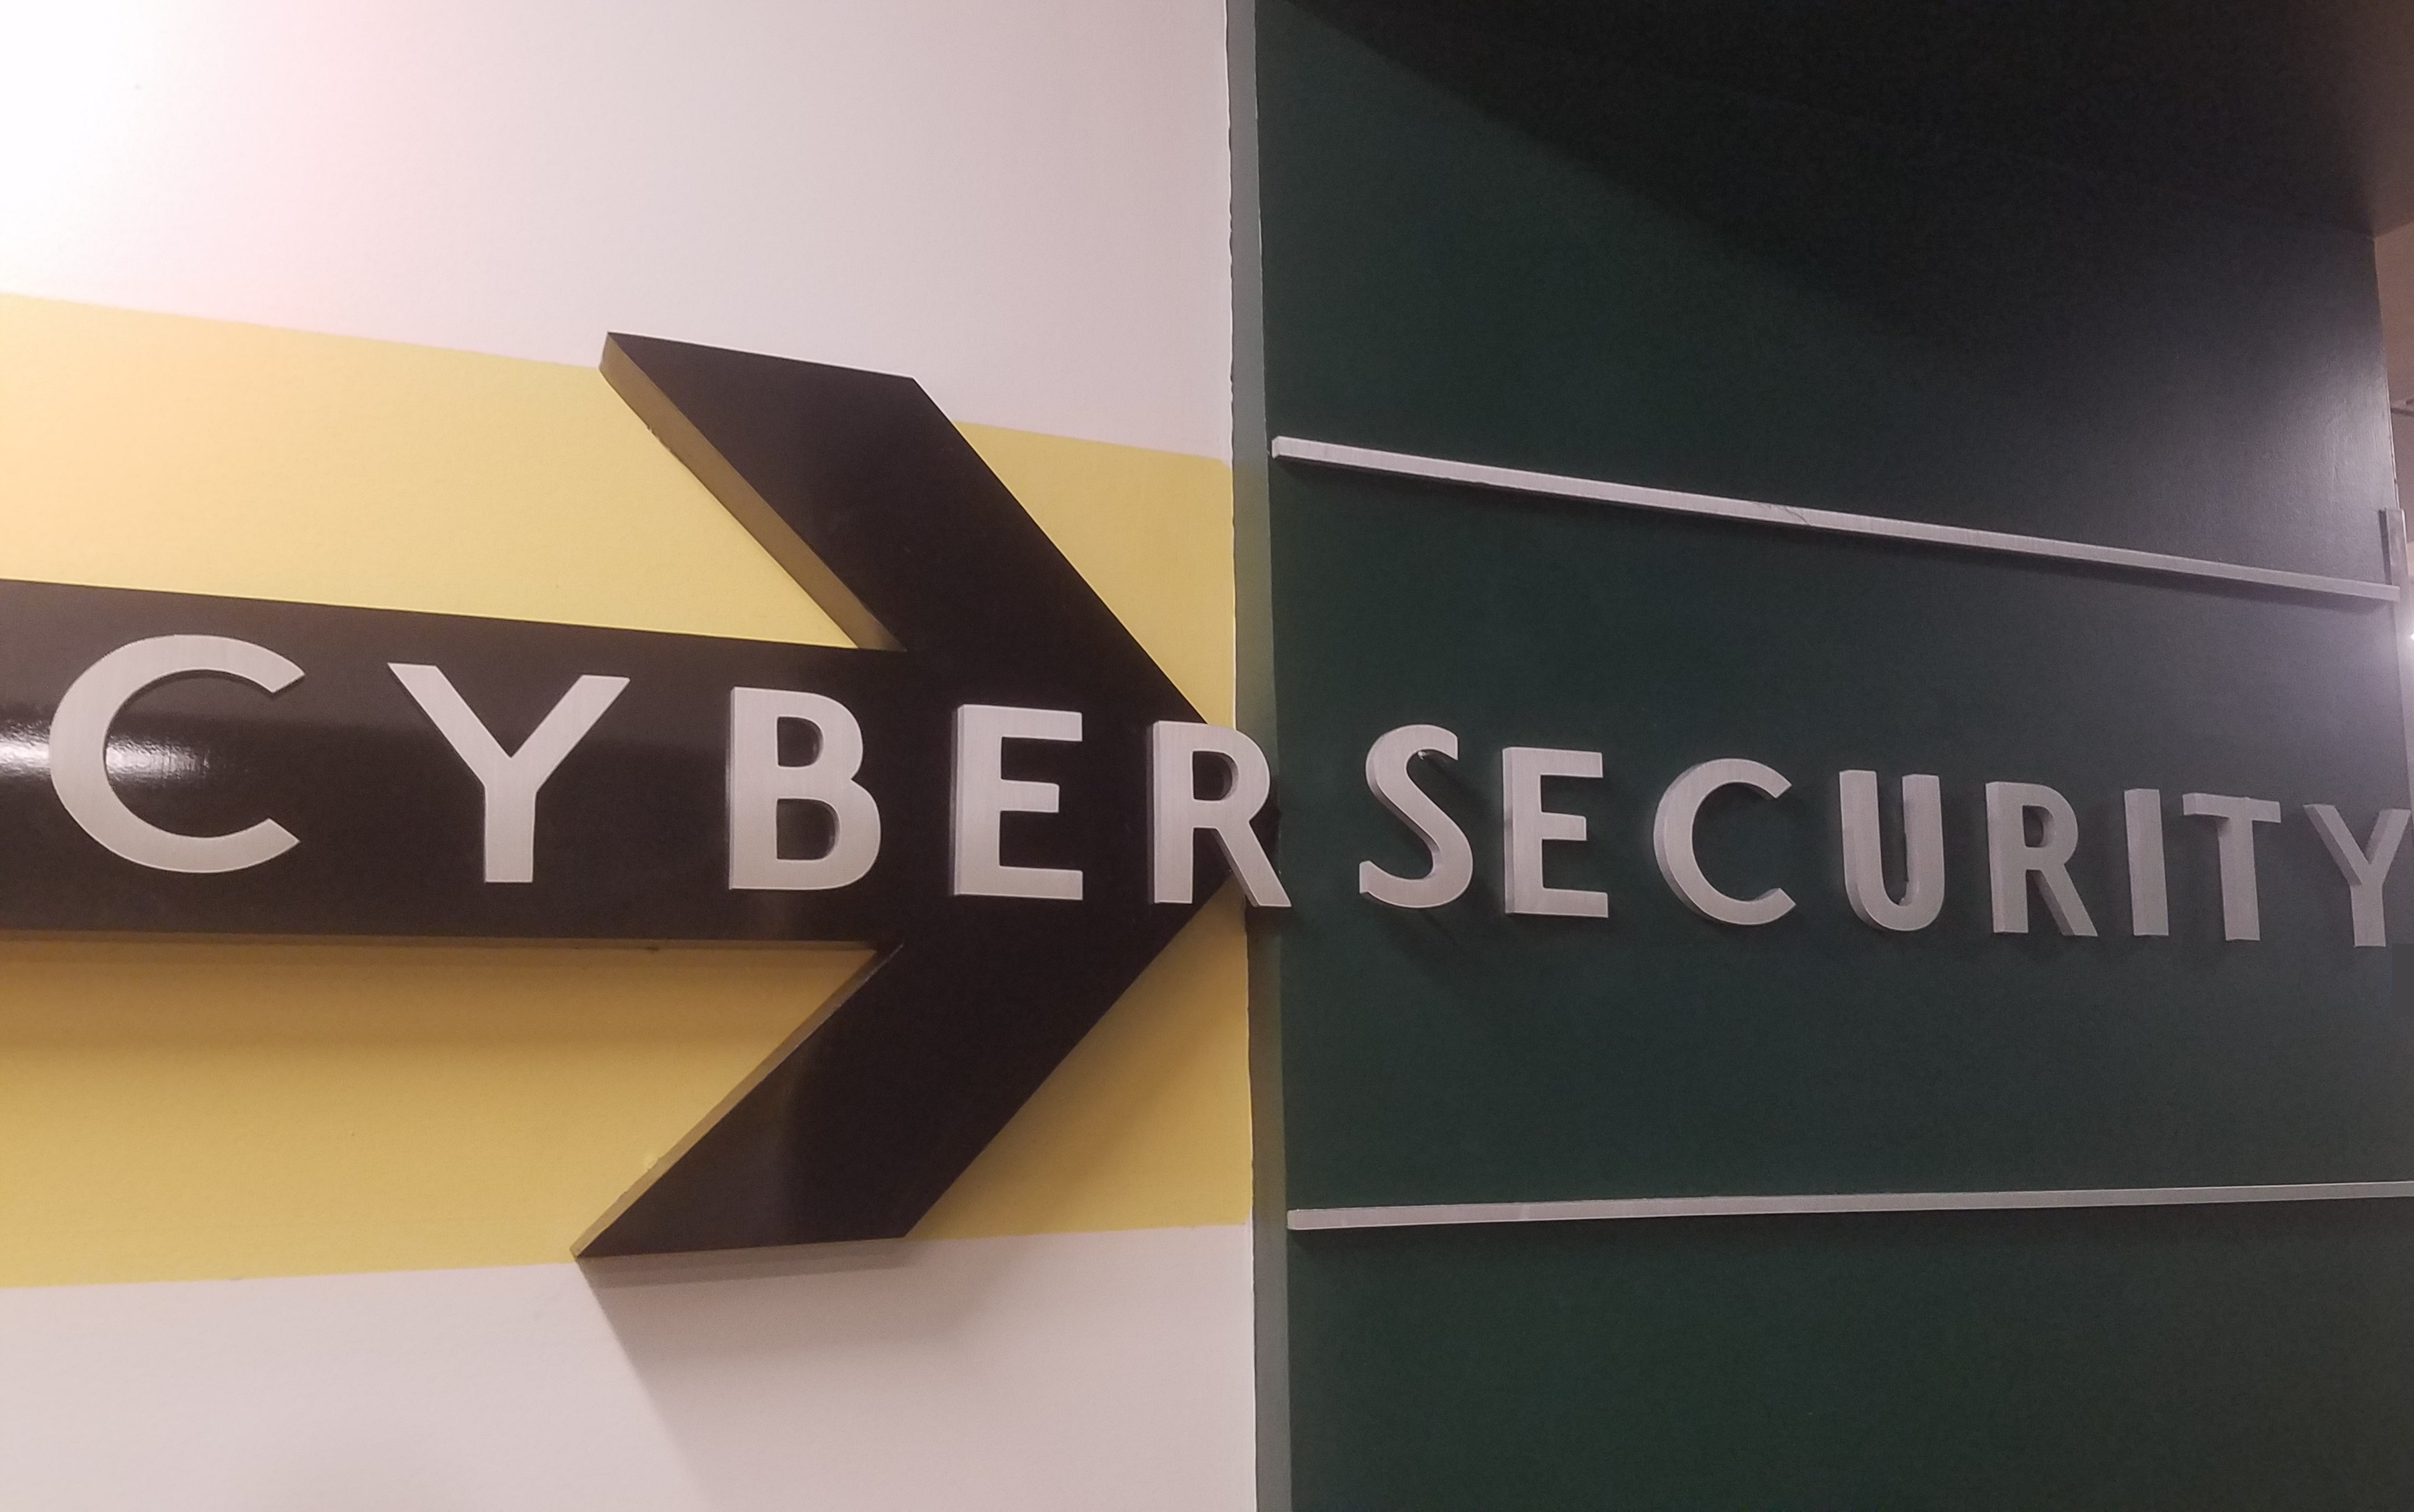 cybersecurity NSU logo